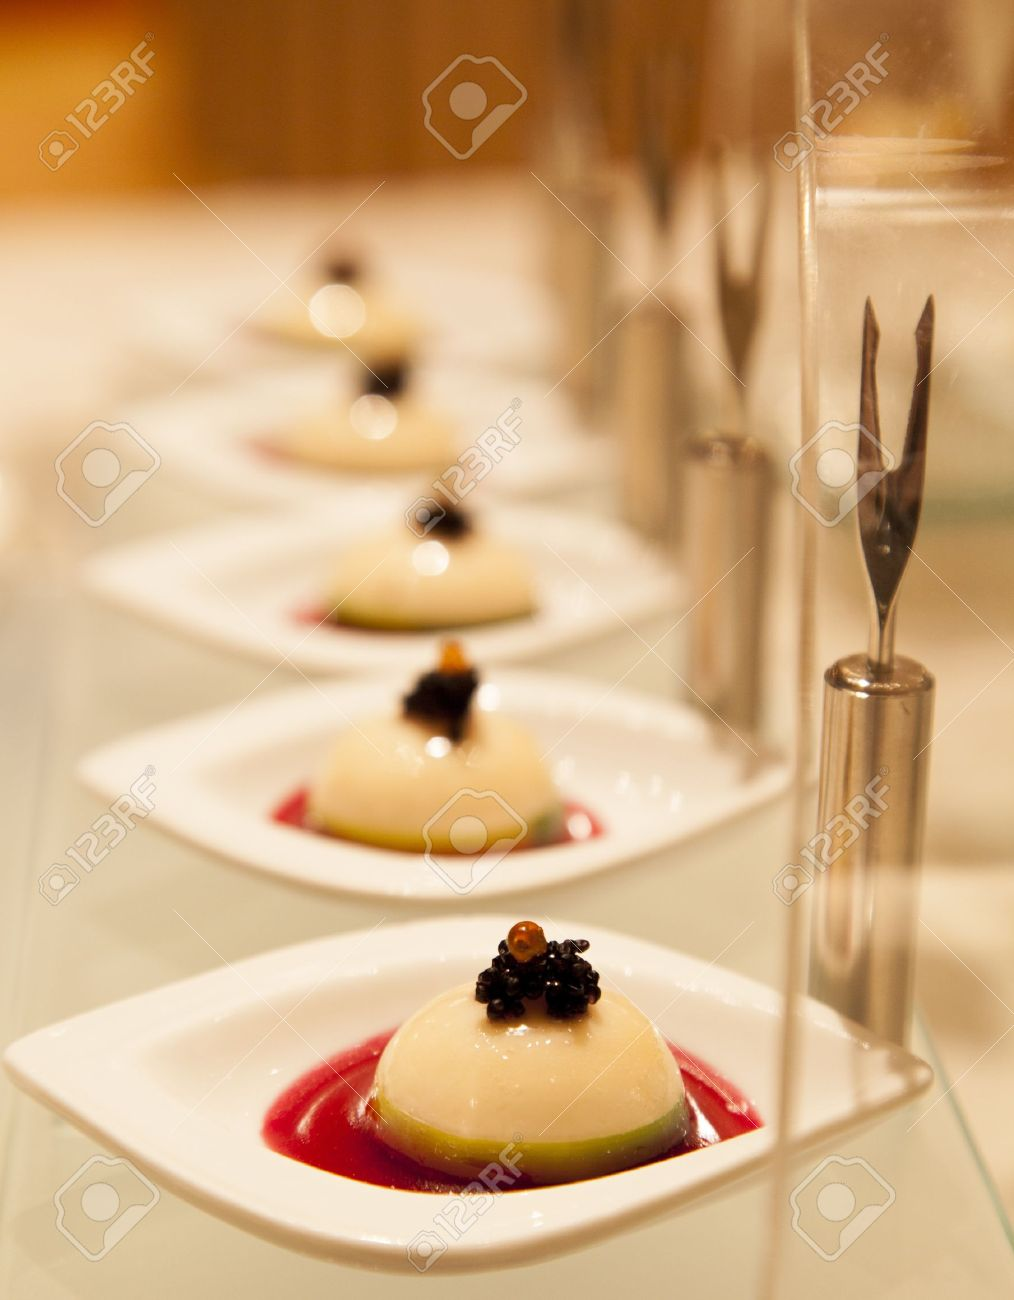 Finger food Fruits of the sea pudding with caviar Stock Photo - 17920419